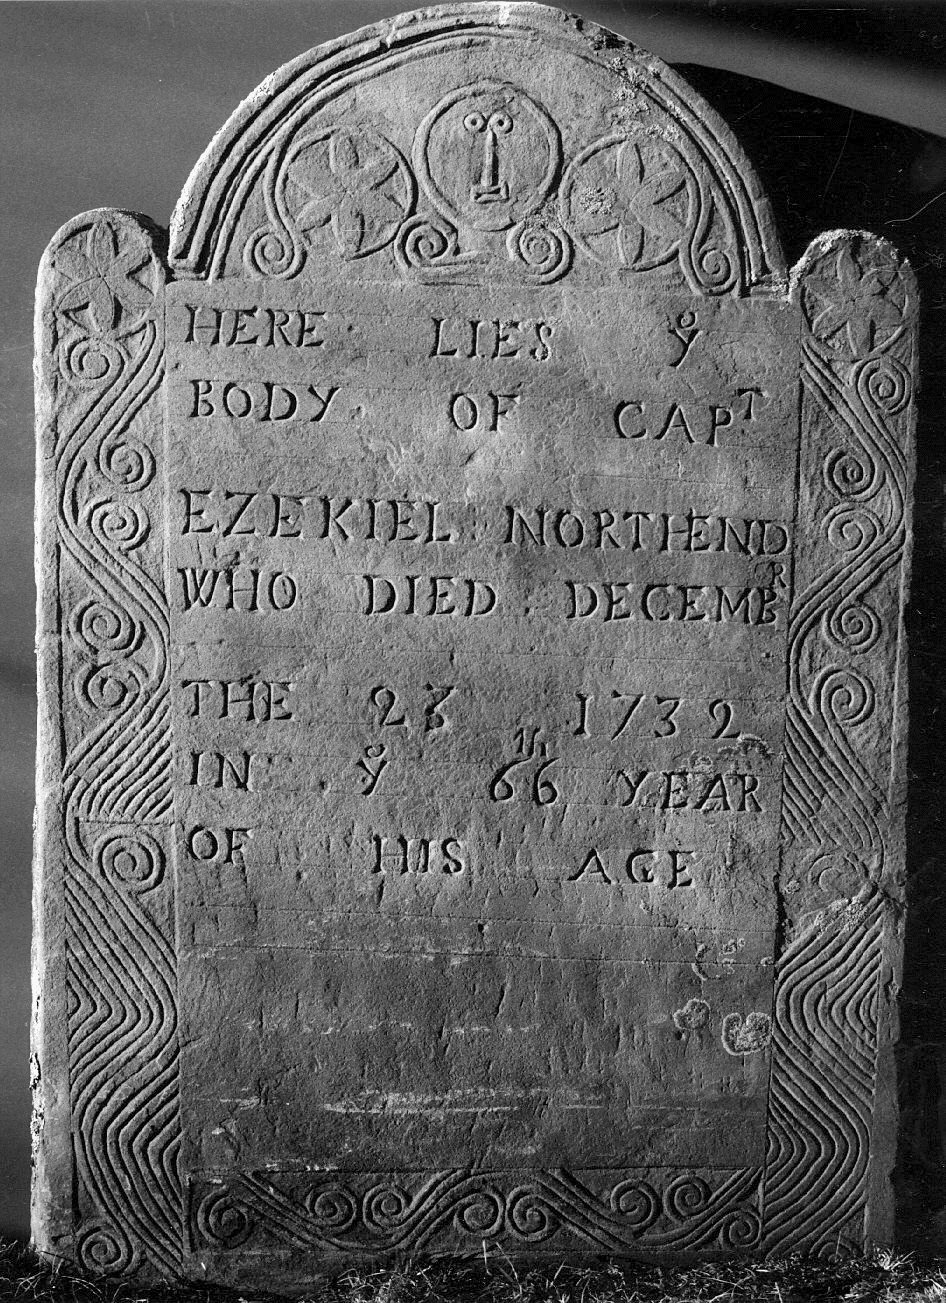 Northend, Capt. Ezekiel